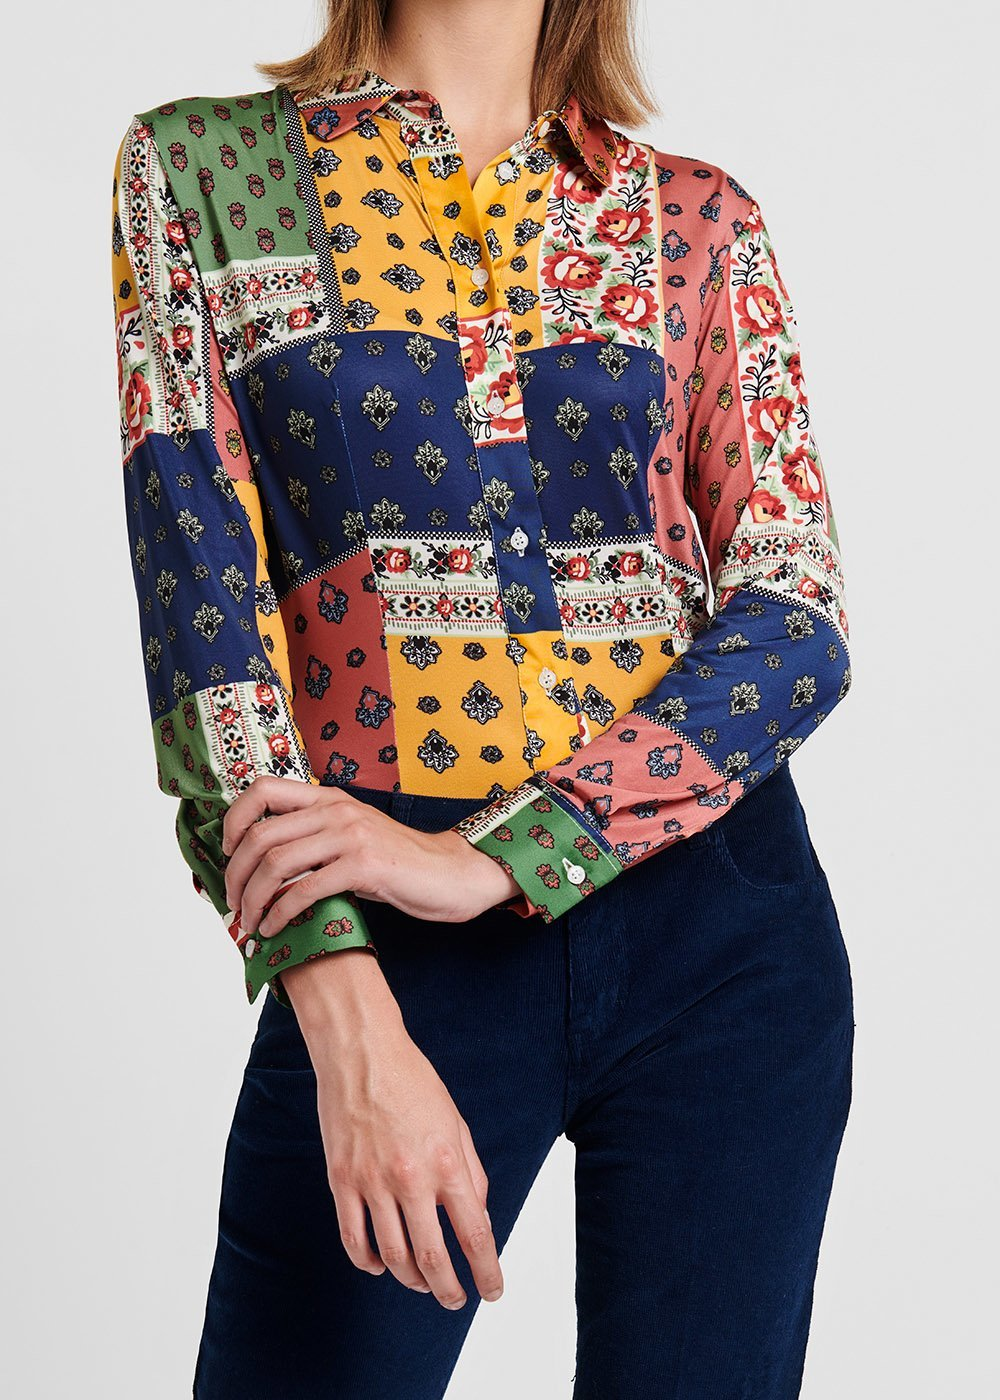 Alessia shirt with patchwork pattern - Avion / Rosette Fantasia - Woman